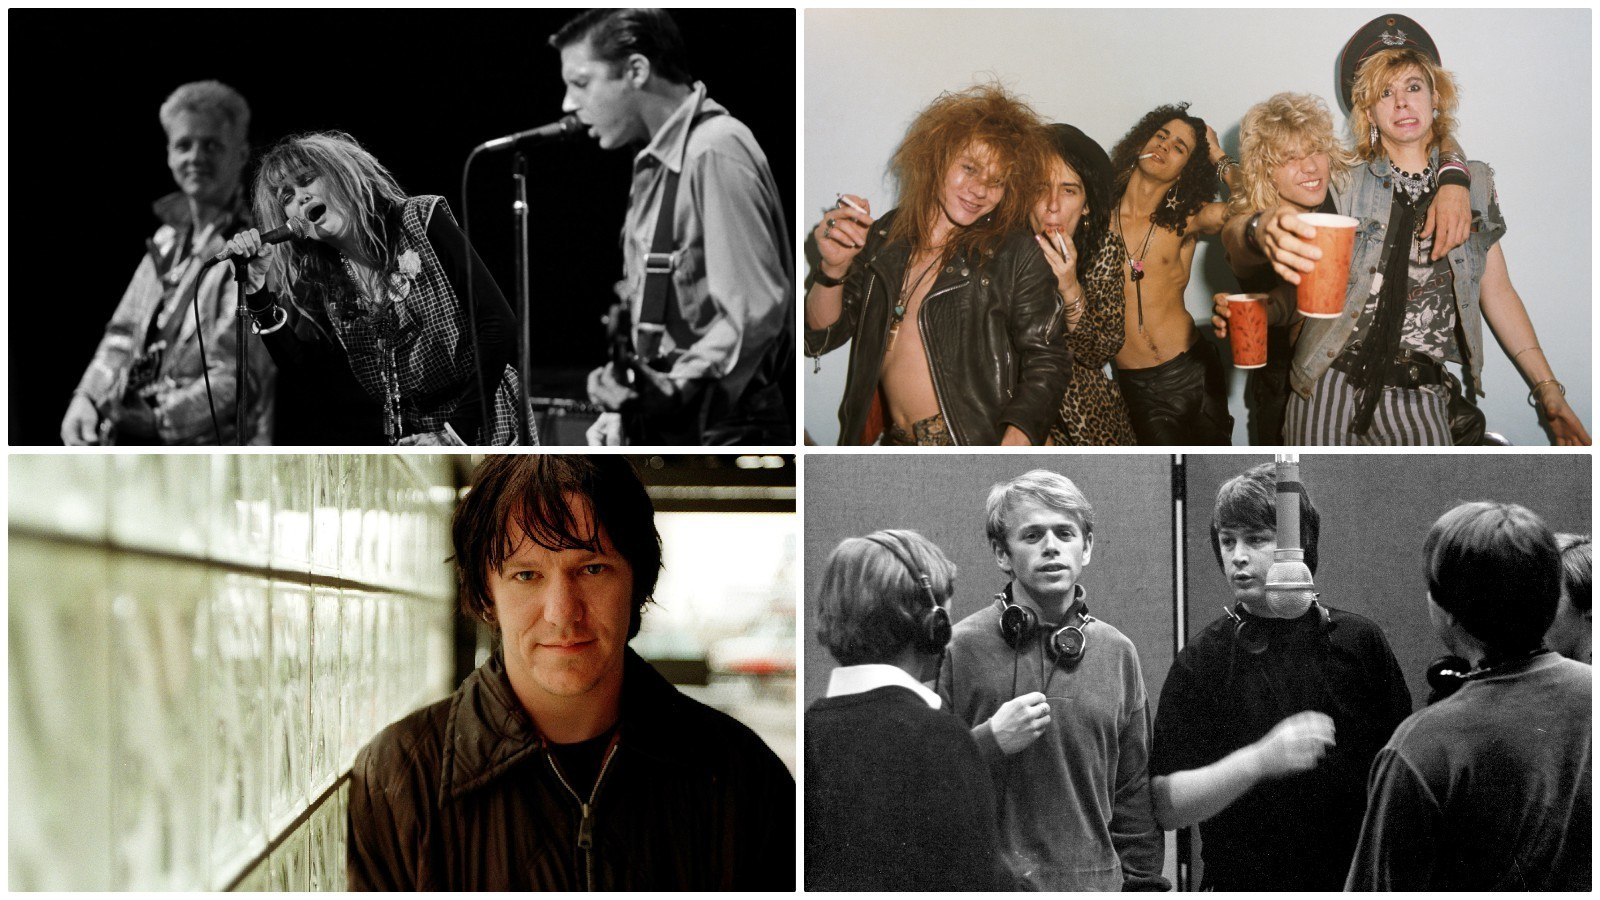 Clockwise from top left: X, Guns n' Roses, the Beach Boys and Elliott Smith. (George Rose / Getty Images; Jack Lue / Michael Ochs Archives / Getty Images; Michael Ochs Archives / Getty Images; Robert Gauthier / Los Angeles Times)